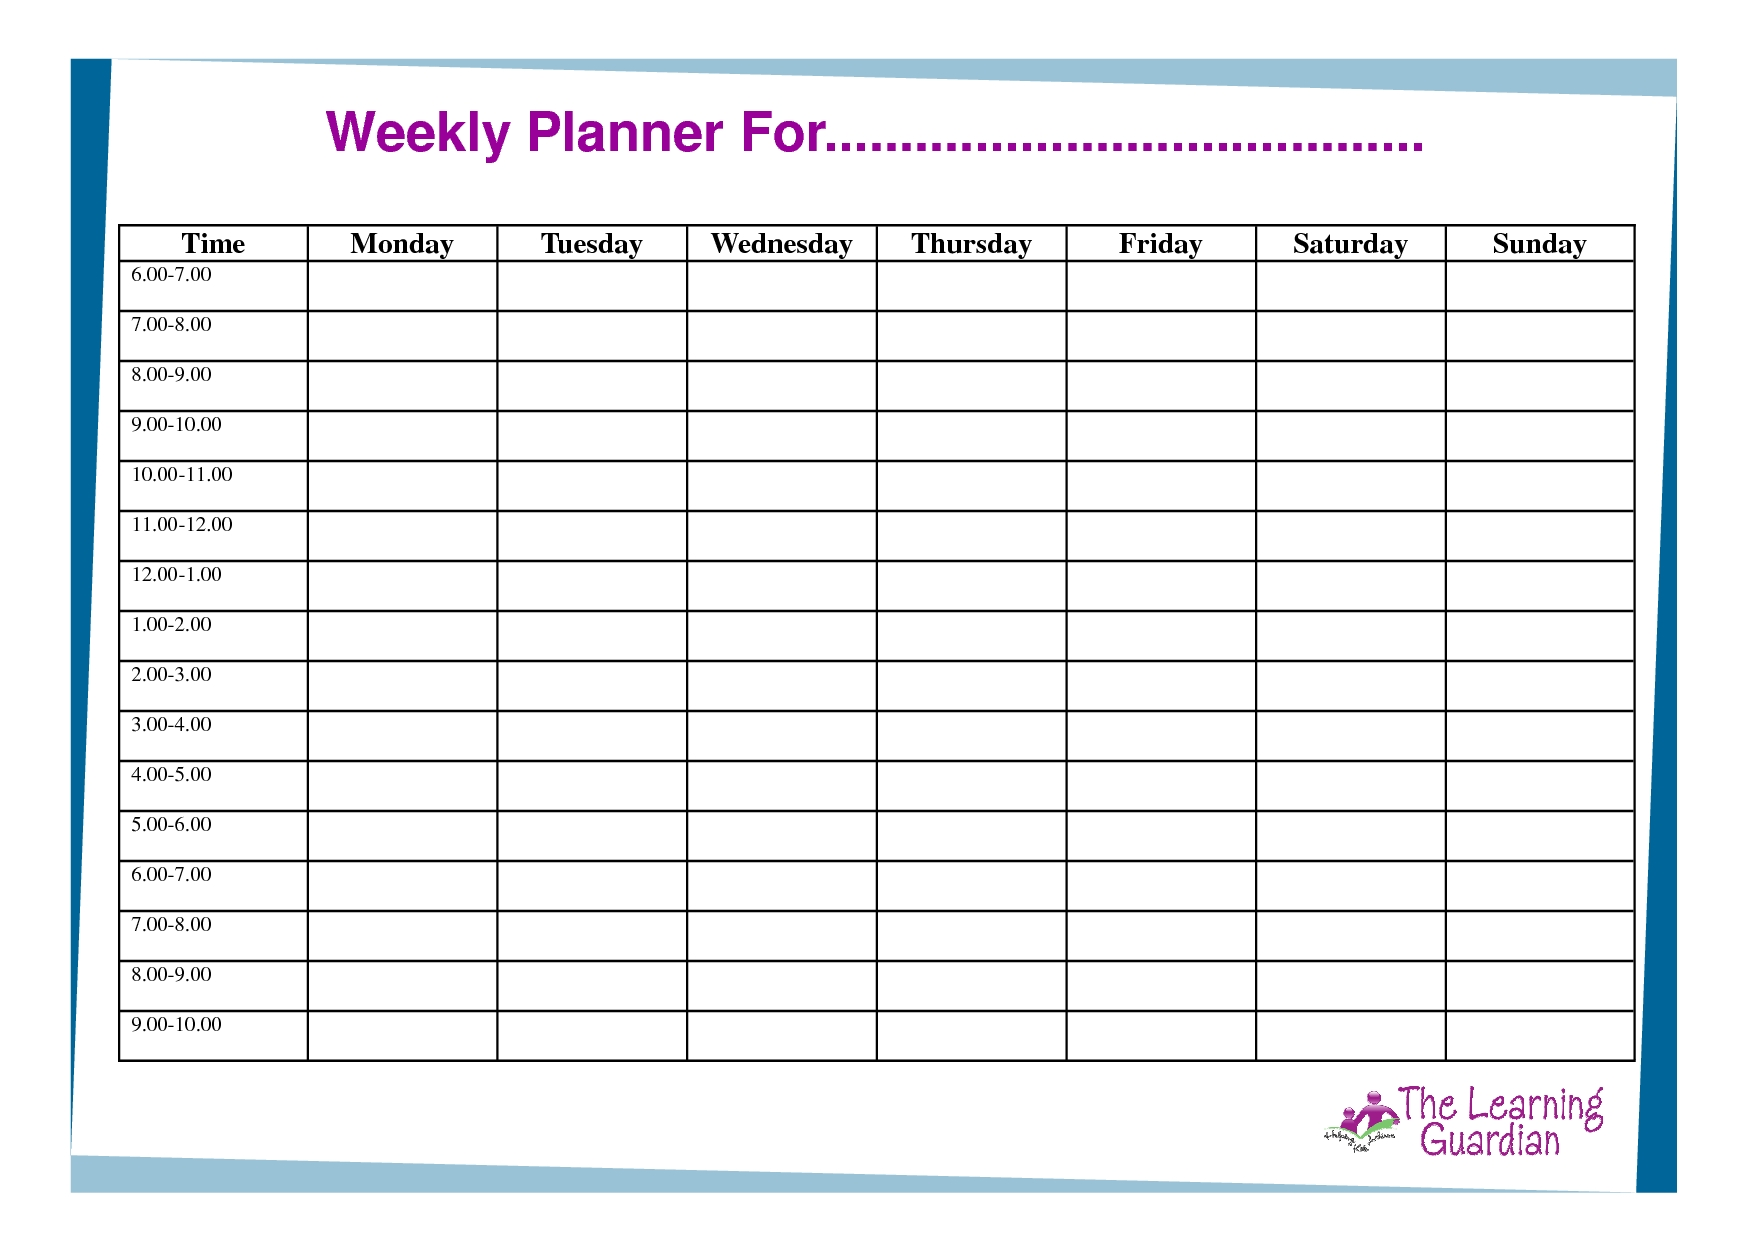 Free Printable Weekly Calendar Templates Weekly Planner For Time3abry